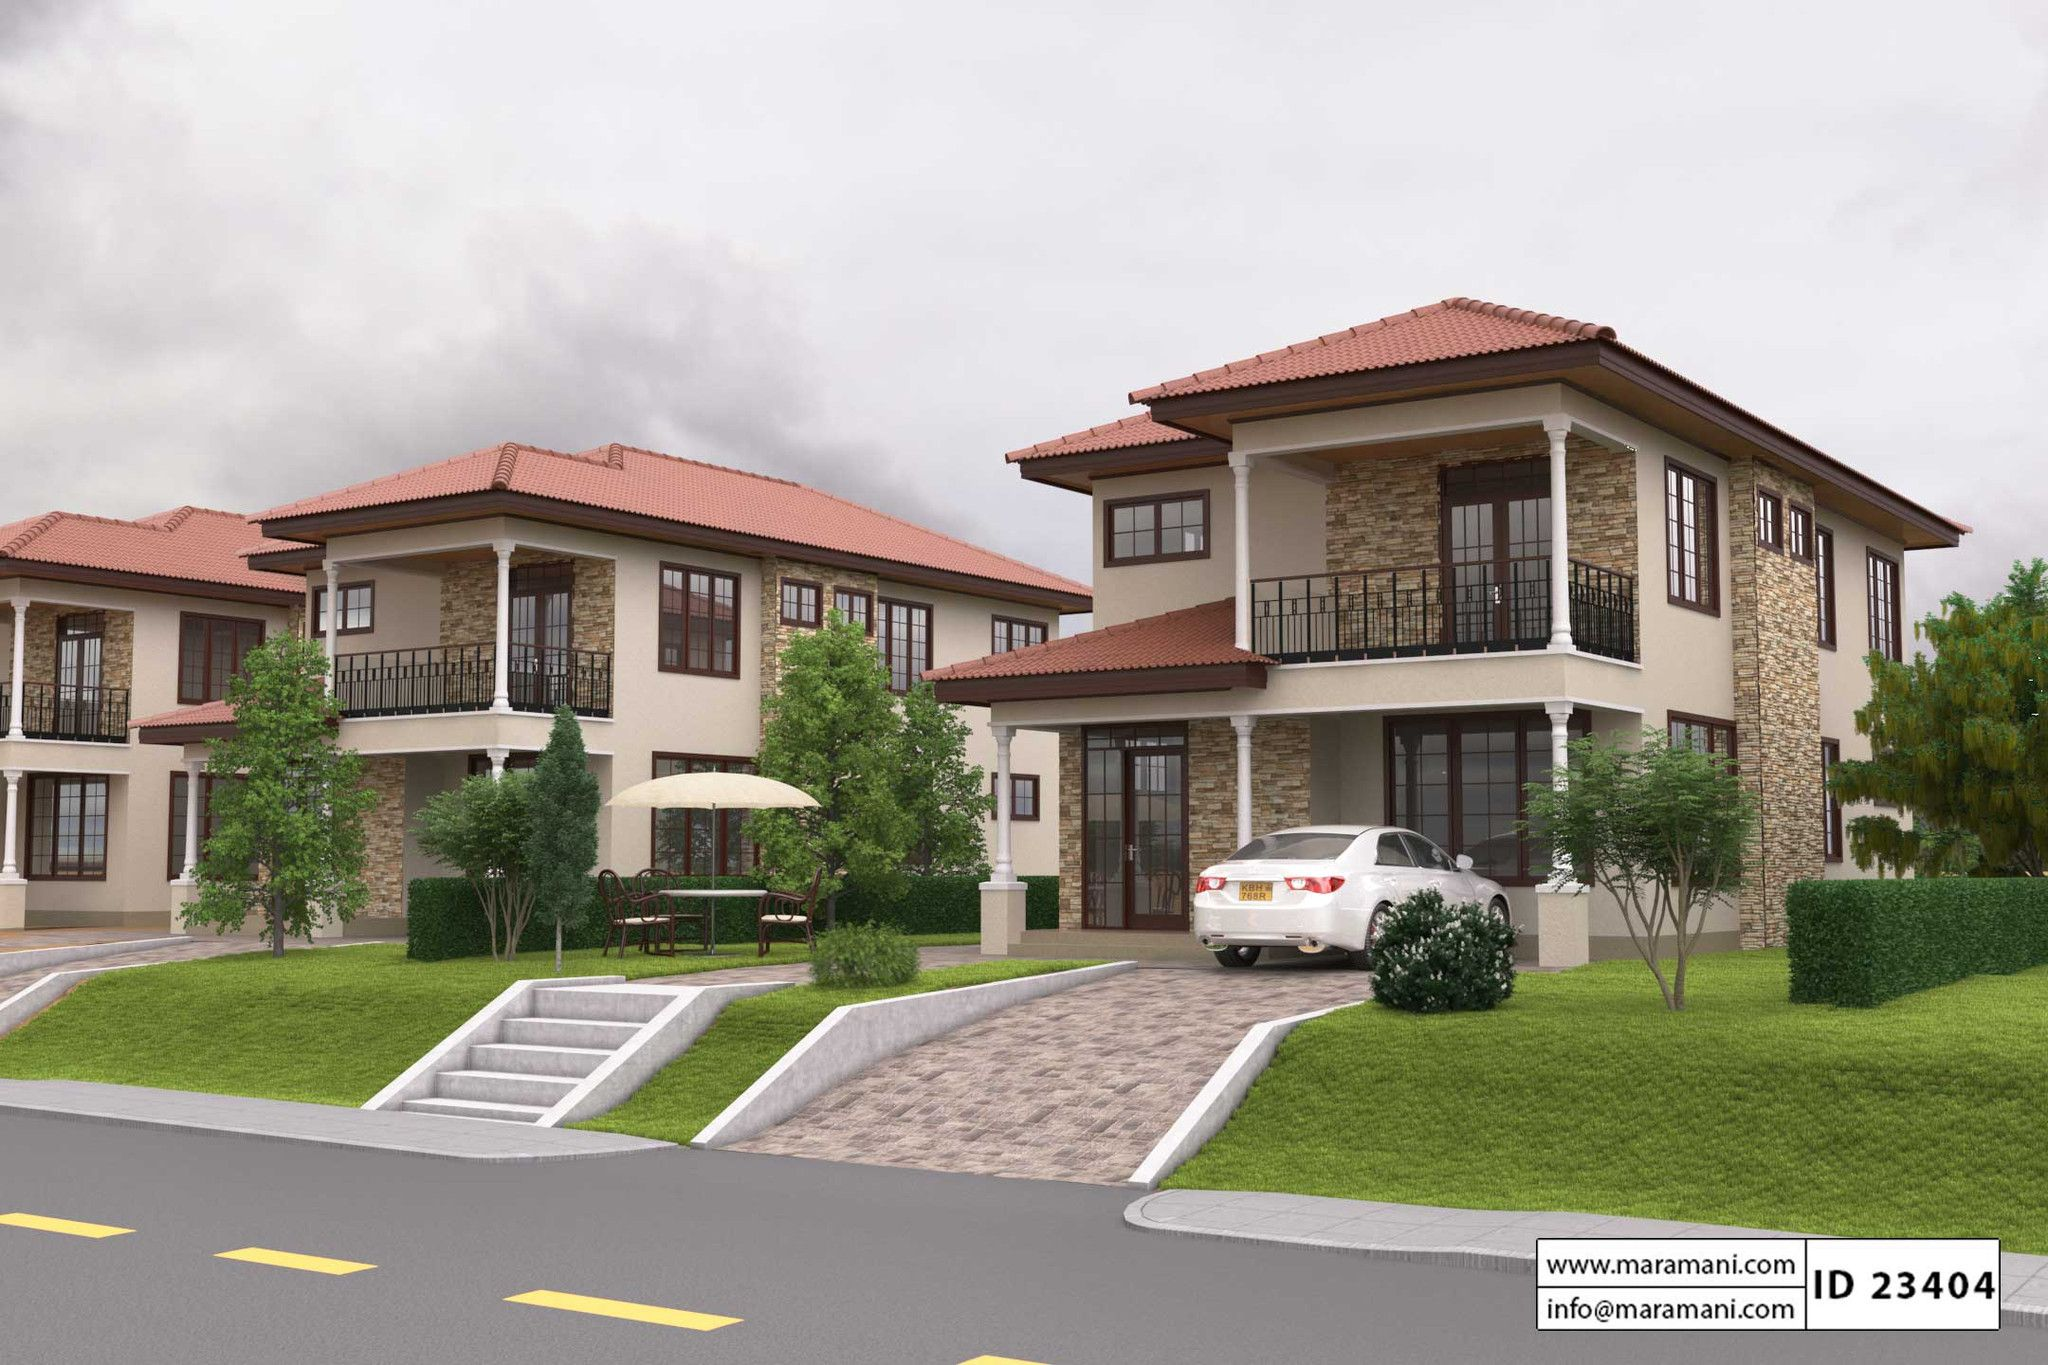 3 bedroom house 3 bedroom house plan id 23404 bedrooms and house 10027